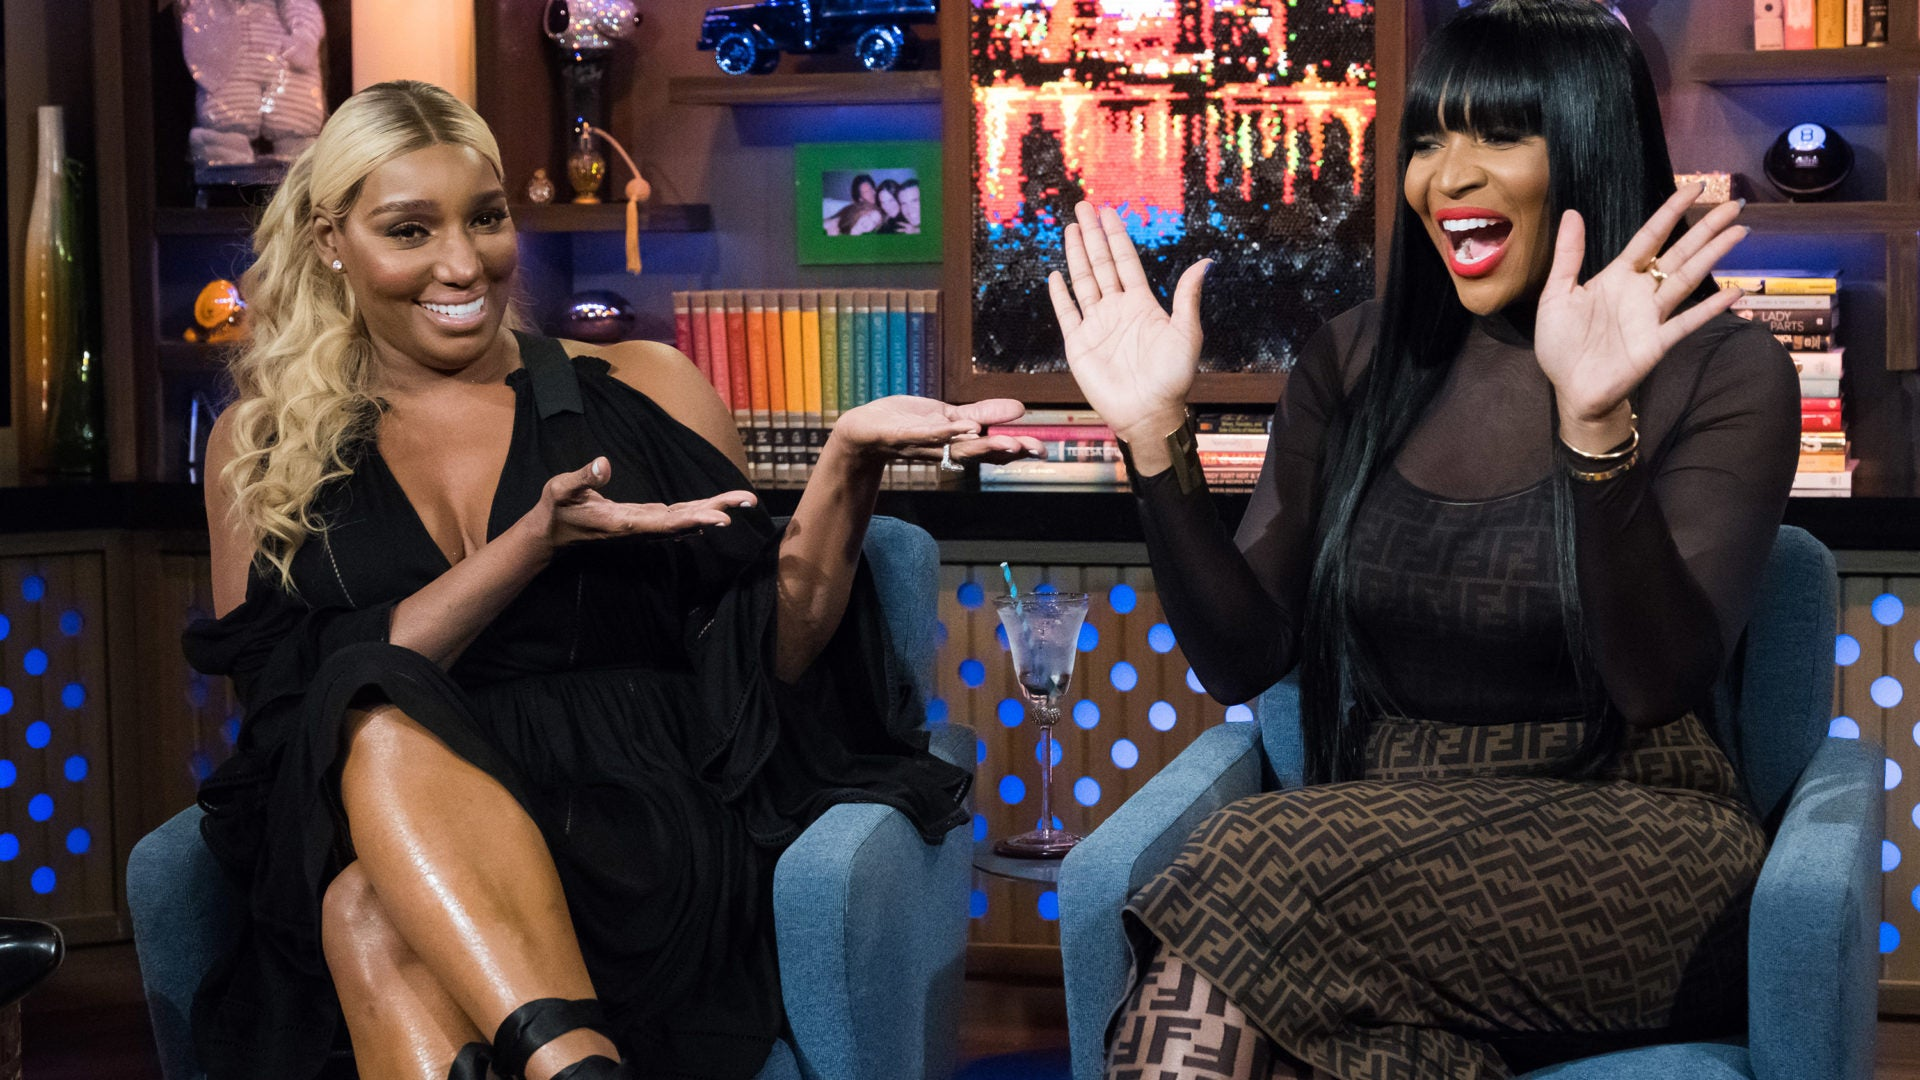 """""""nene-leakes-gushes-over-her-bff-marlo-hampton-for-her-birthday-see-their-pics-together"""""""